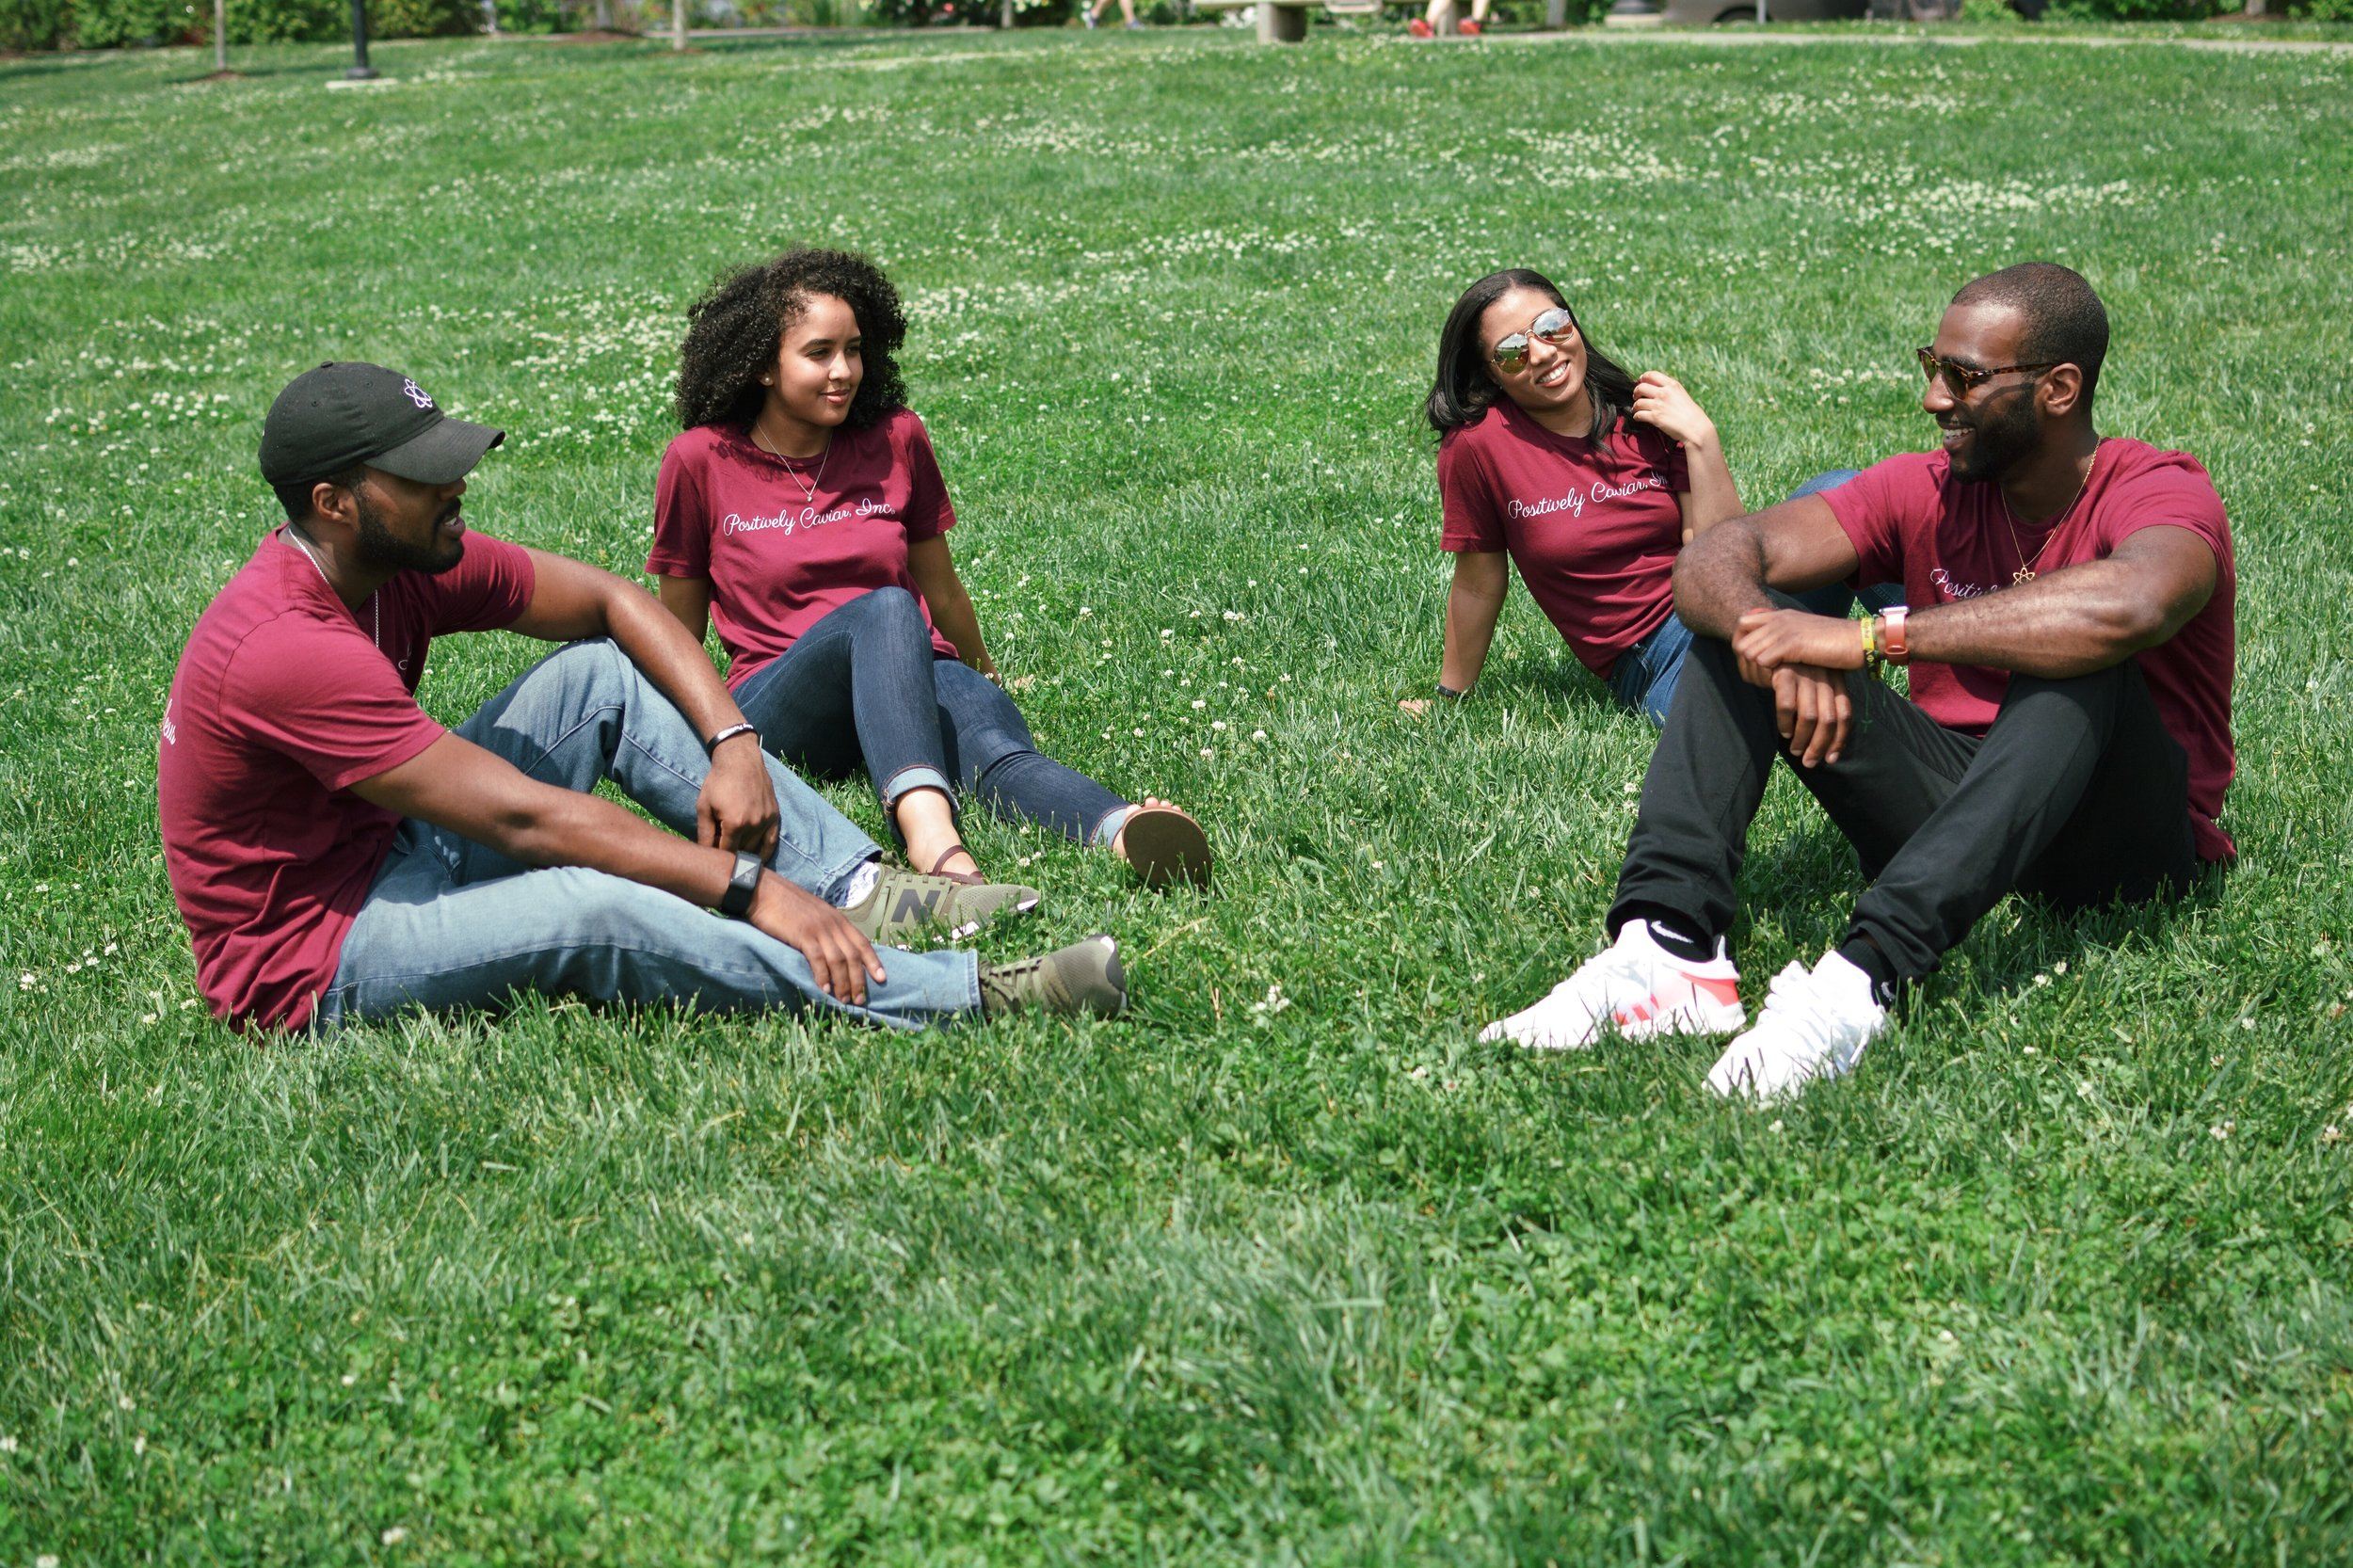 The Nucleus Team of Positively Caviar (left to right) Jean Claude Louis-Charles III, Shayma Sulaiman, Nikki Abraham and Chazz Scott